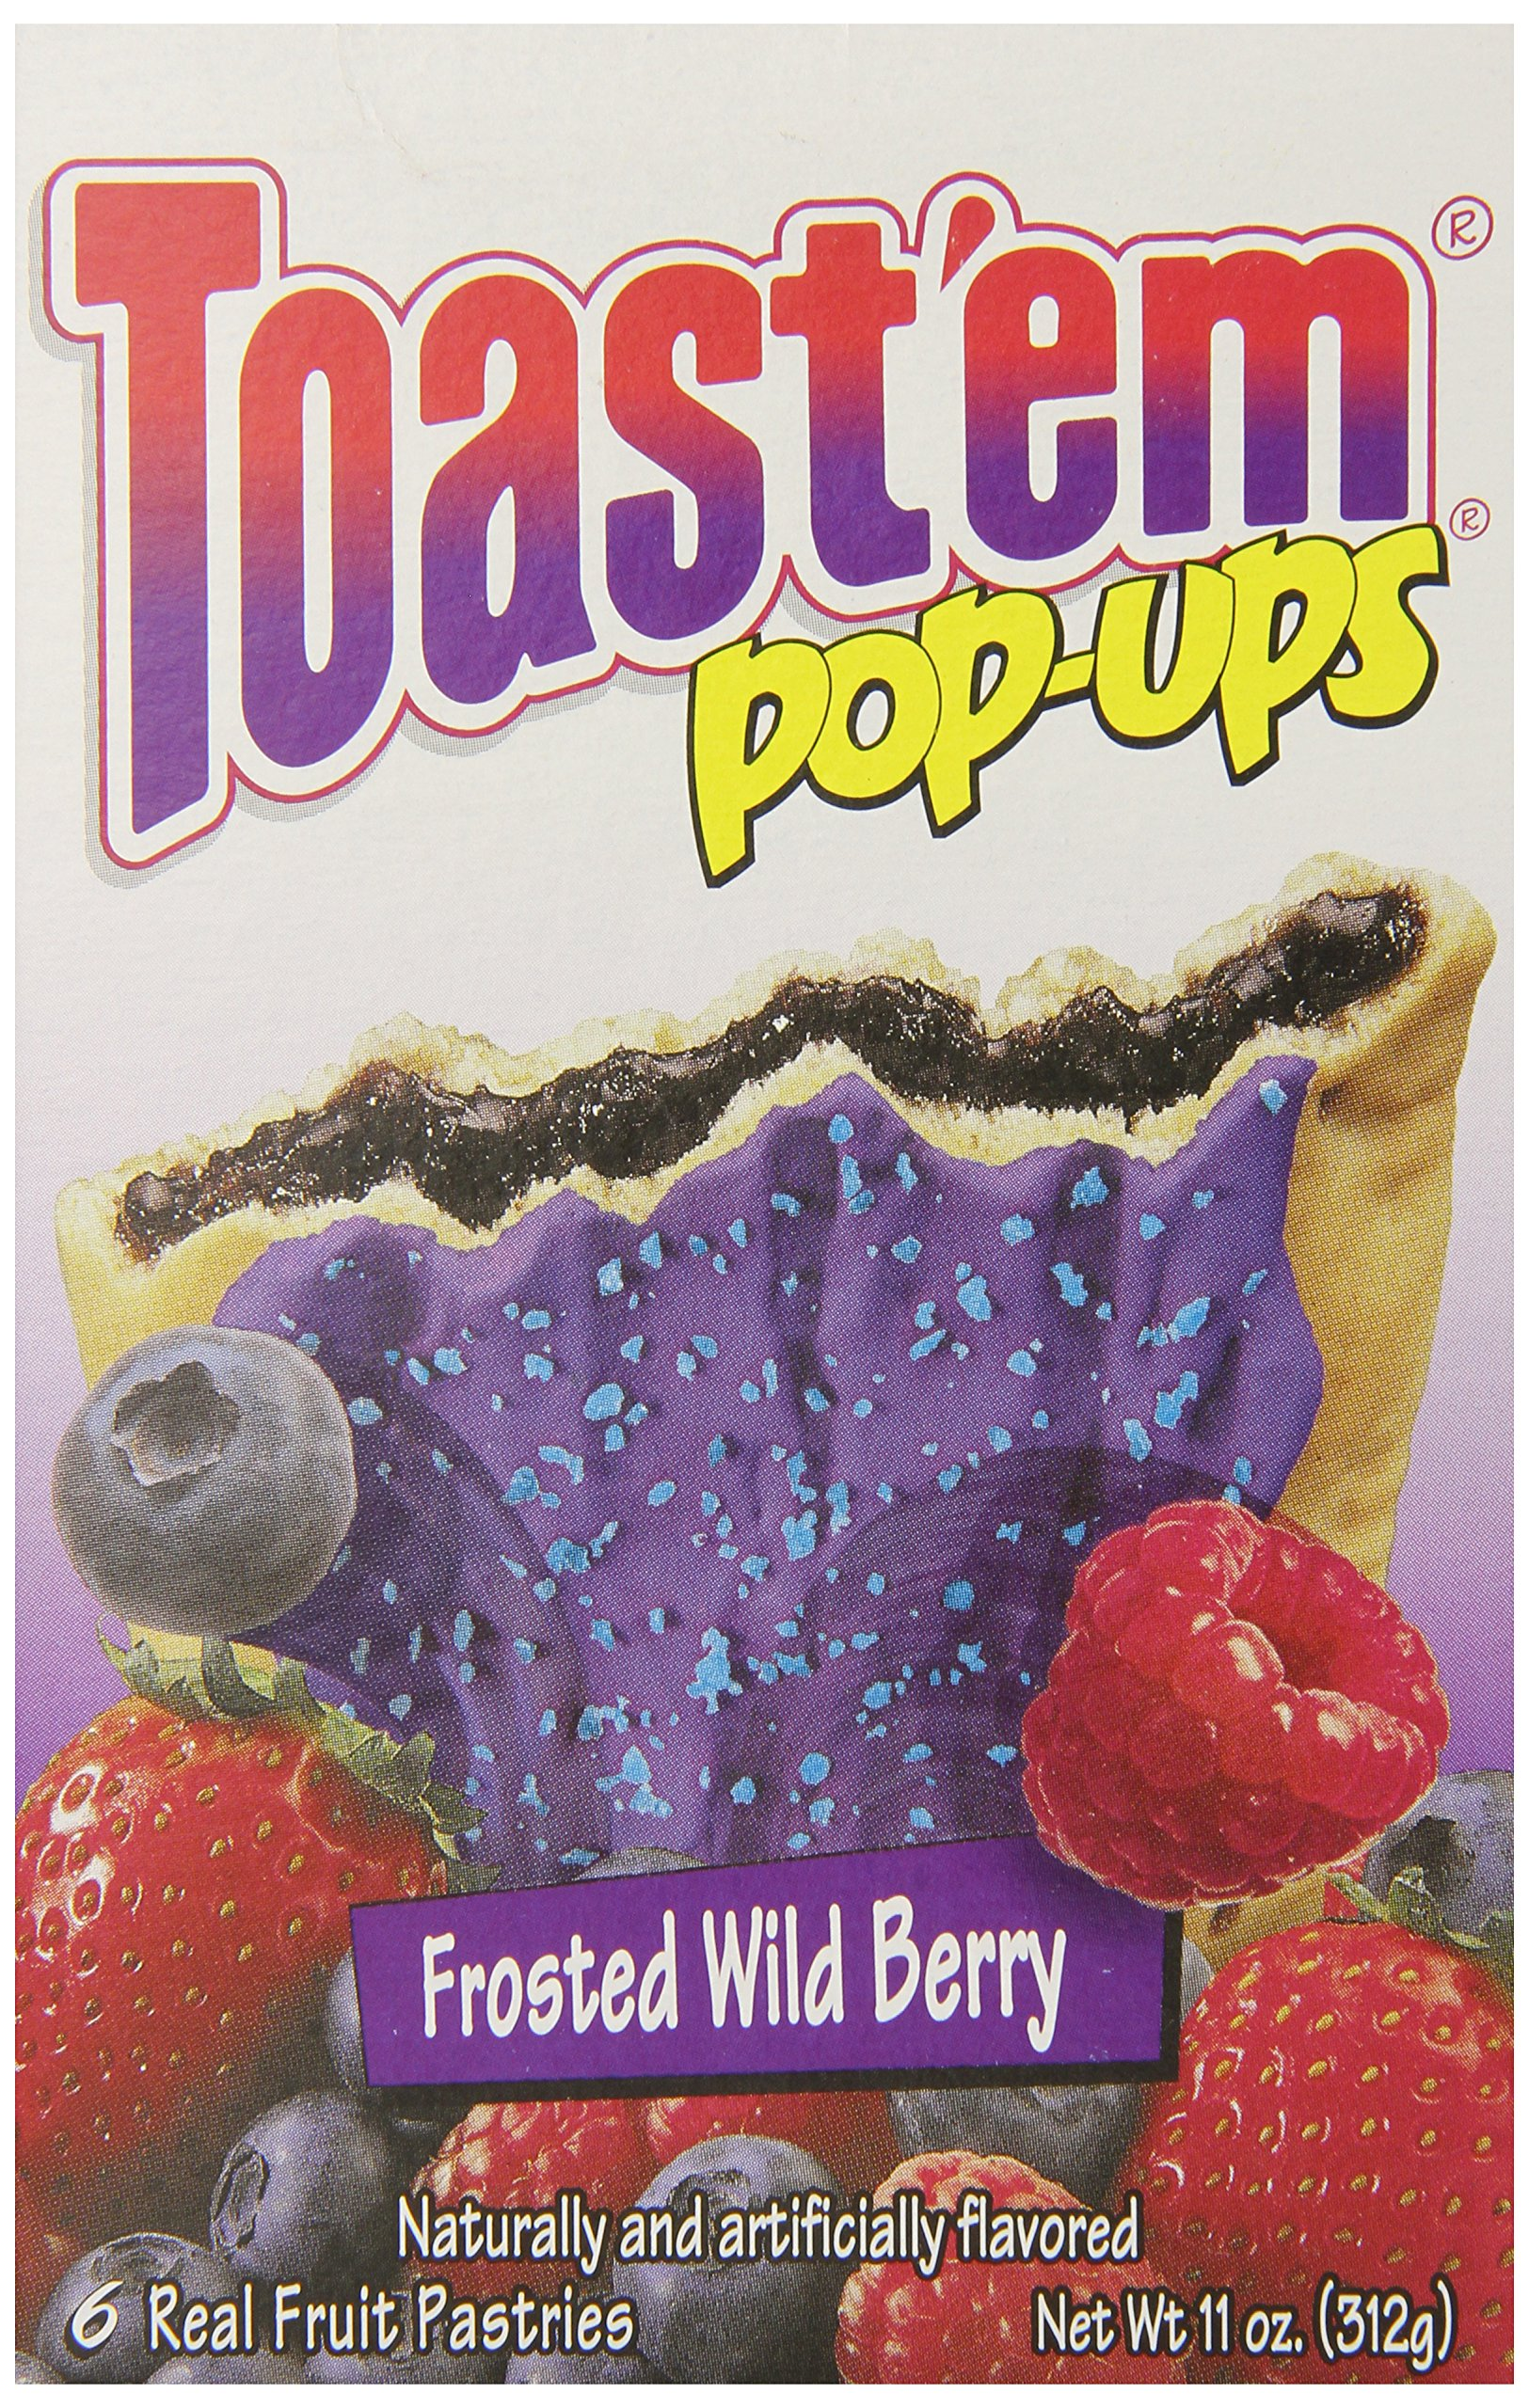 Toast'em Frosted Wild Berry Pastry Tart, 11 Ounce